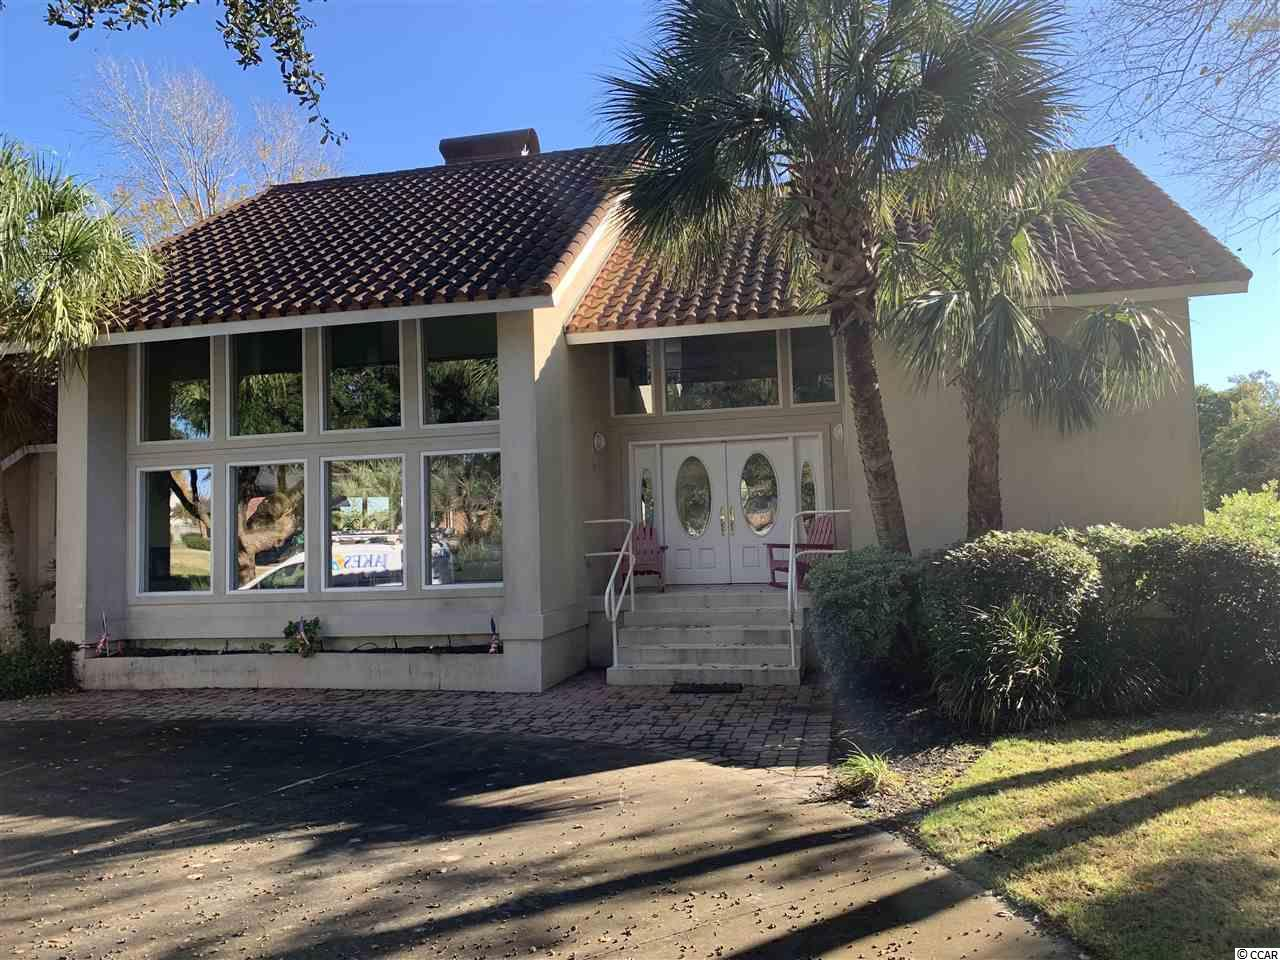 THIS CUSTOM BUILT HOME WITH LOTS OF UPGRADES SITS ON A LARGE ICW LOT WITH FIXED DOCK ALREADY IN PLACE. LARGE OPEN DECK OVERLOOKS PRISTINE LANDSCAPING WITH BEAUTIFUL LIVE OAK TREES. BUILT IN 1987 BUT FULLY RENOVATED WITH ADDITION ADDED IN 2000. SPECTACULAR VIEWS OF ICW AND ONLY MINUTES AWAY FROM SHOPPING, RESTAURANTS AND BEACHES.